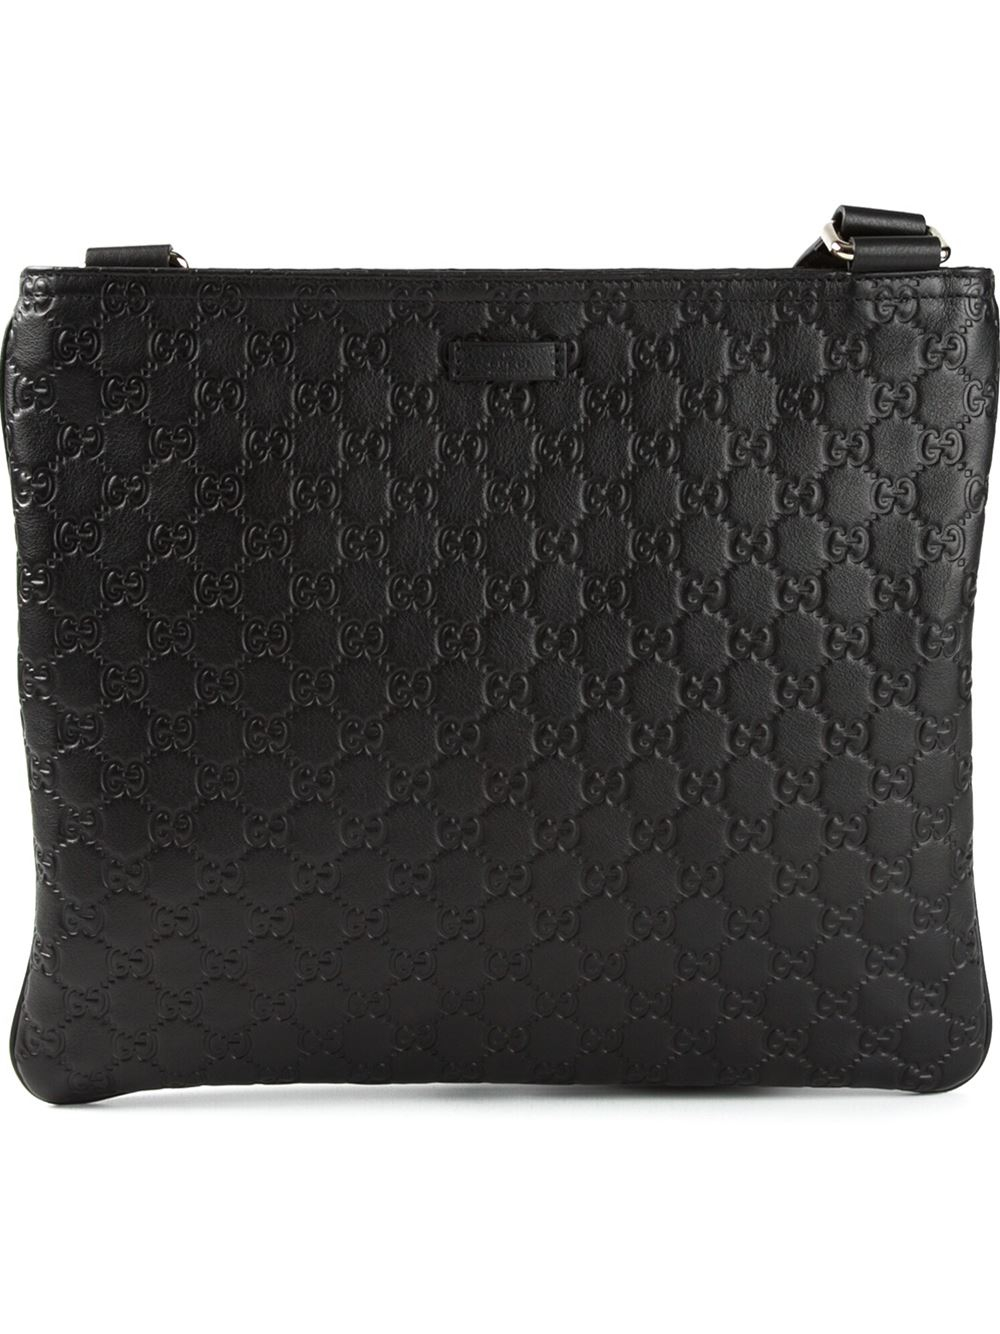 cc22b8df1fbeed Gucci Monogram Messenger Bag in Black for Men - Lyst